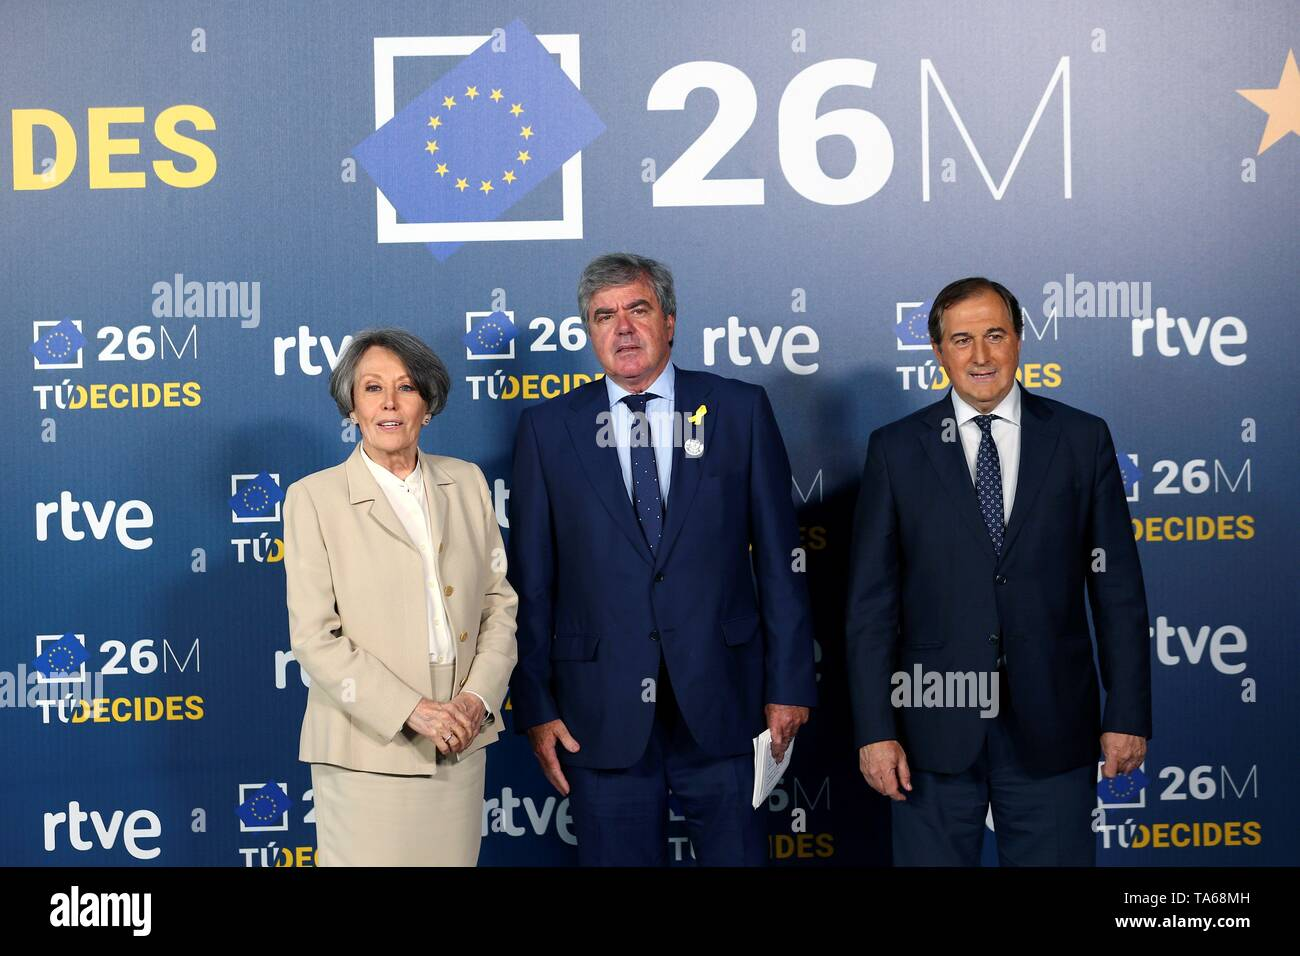 Madrid, Spain. 22nd May, 2019. Candidate to European MP of Spanish Party Lliures per Europa/Junts, Gorka Knorr (C) poses next to Spanish Public Television and Radio (RTVE) Administrator Rosa Maria Mateo (L) and Spanish Public Television (TVE) Director Eladio Jareno (R) prior to electoral debate at the Prado del Rey studios in Madrid, Spain, 22 May 2019. Spain is holding local, regional and European elections 26 May 2019. Credit: Rodrigo Jimenez/EFE/Alamy Live News - Stock Image